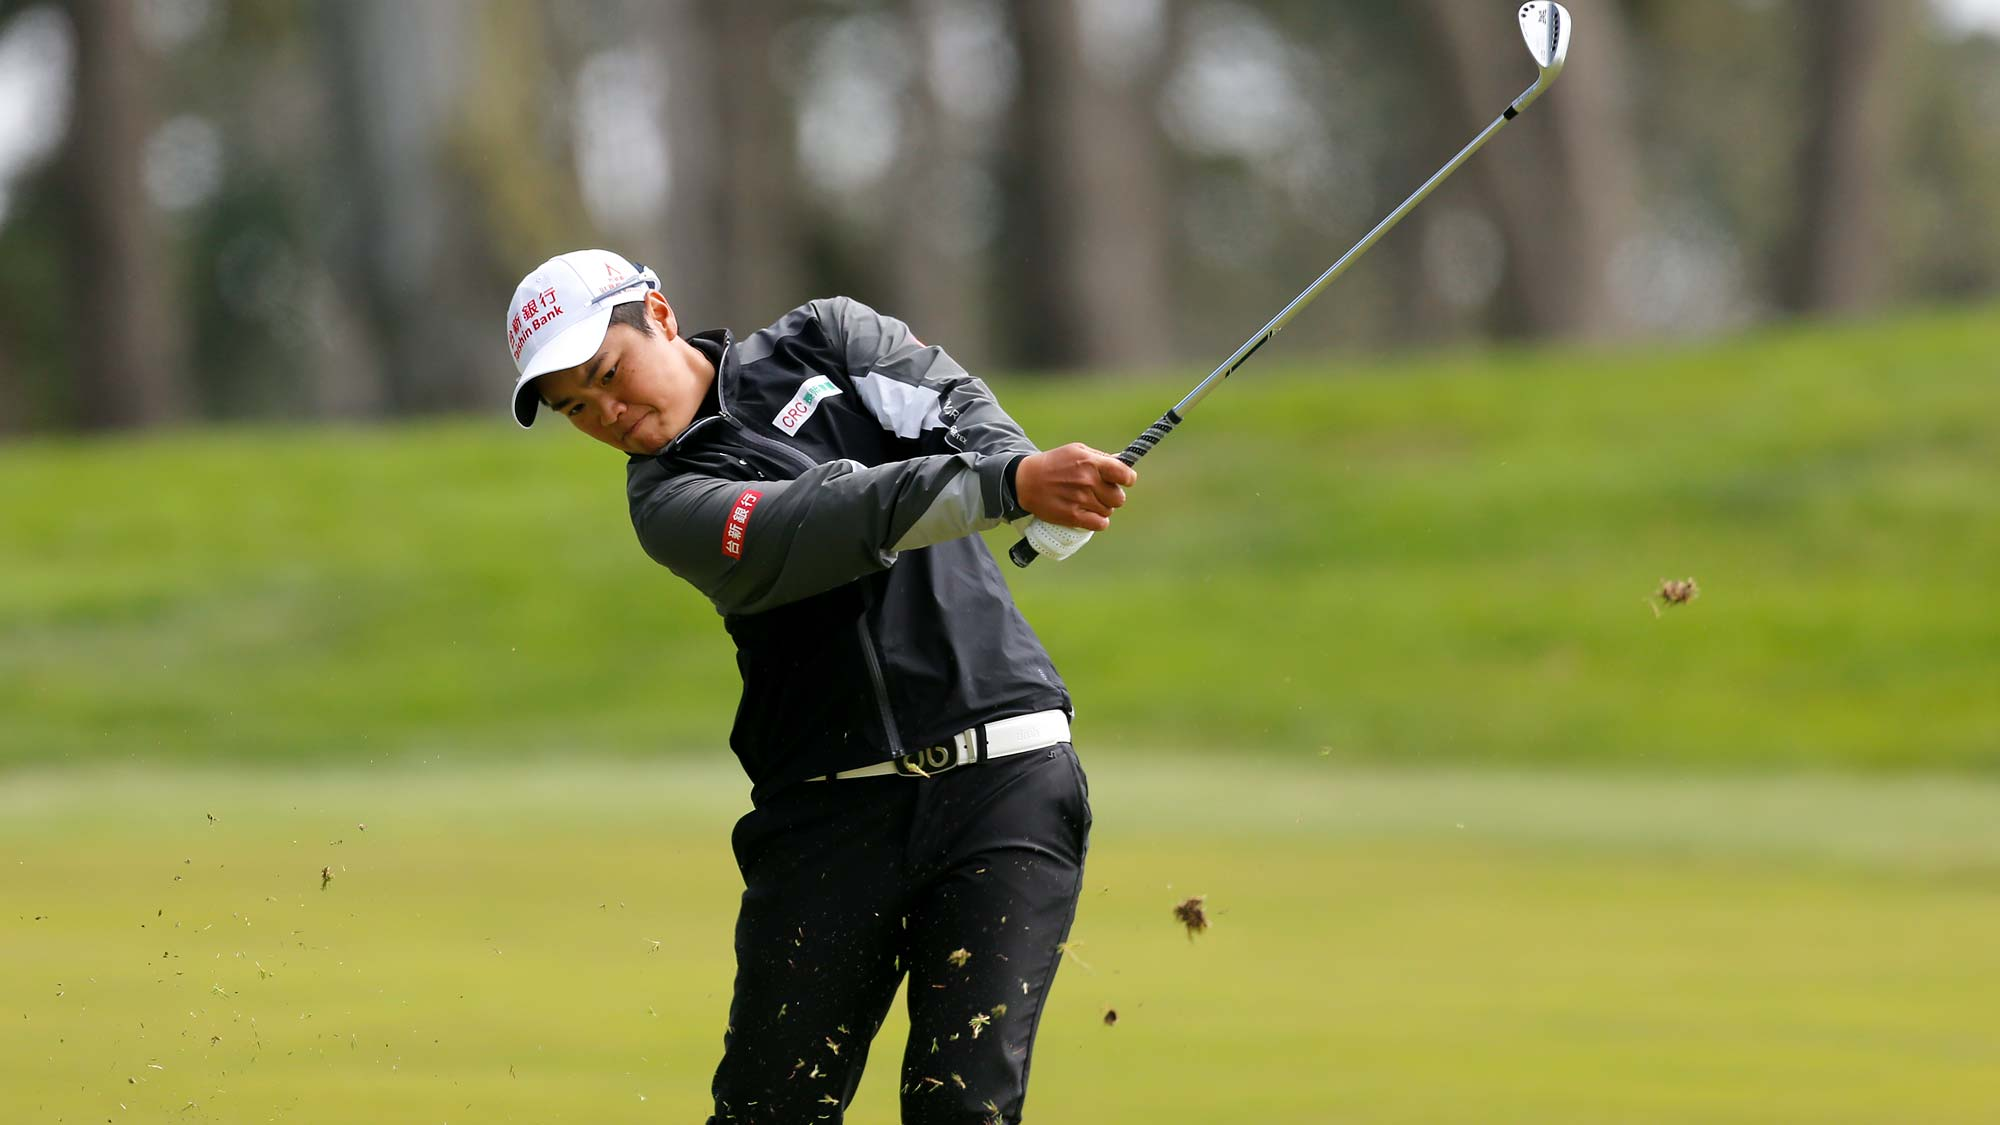 Peiyun Chien of China hits on the 11th hole during the third round of the LPGA Mediheal Championship